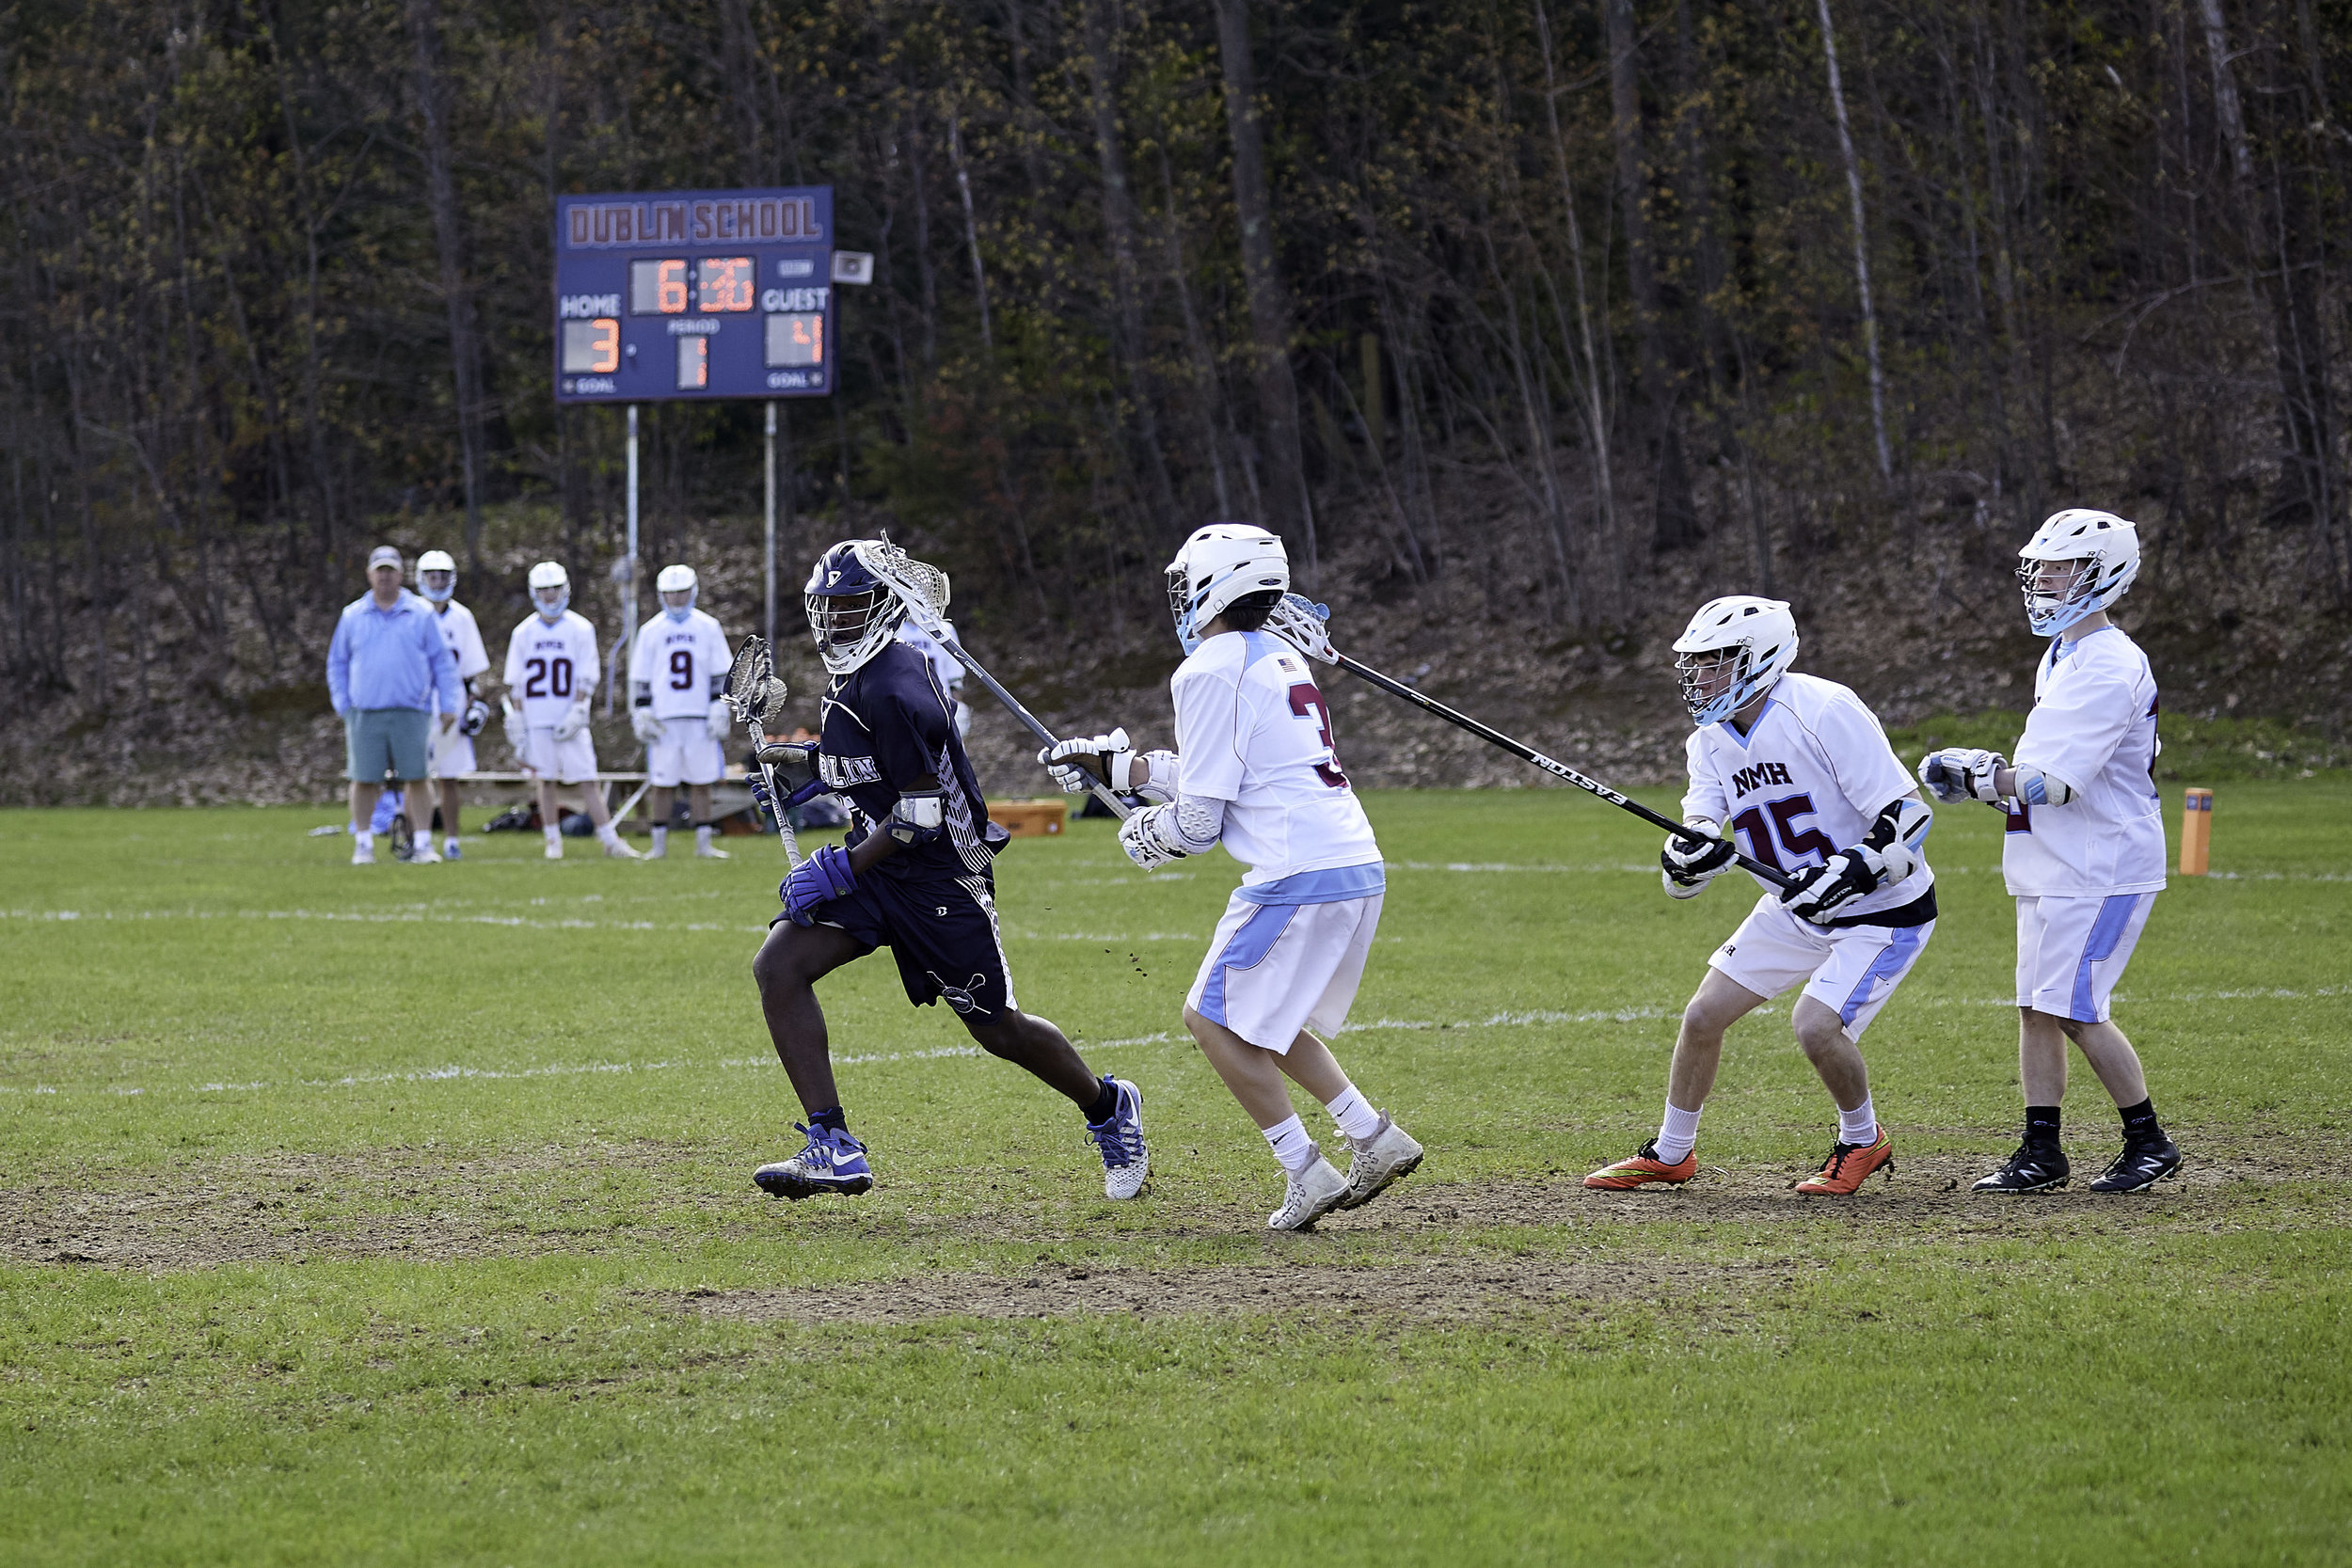 Boys Lax vs Northfield Mount Hermon JV - May 15 2019 - 0003.jpg